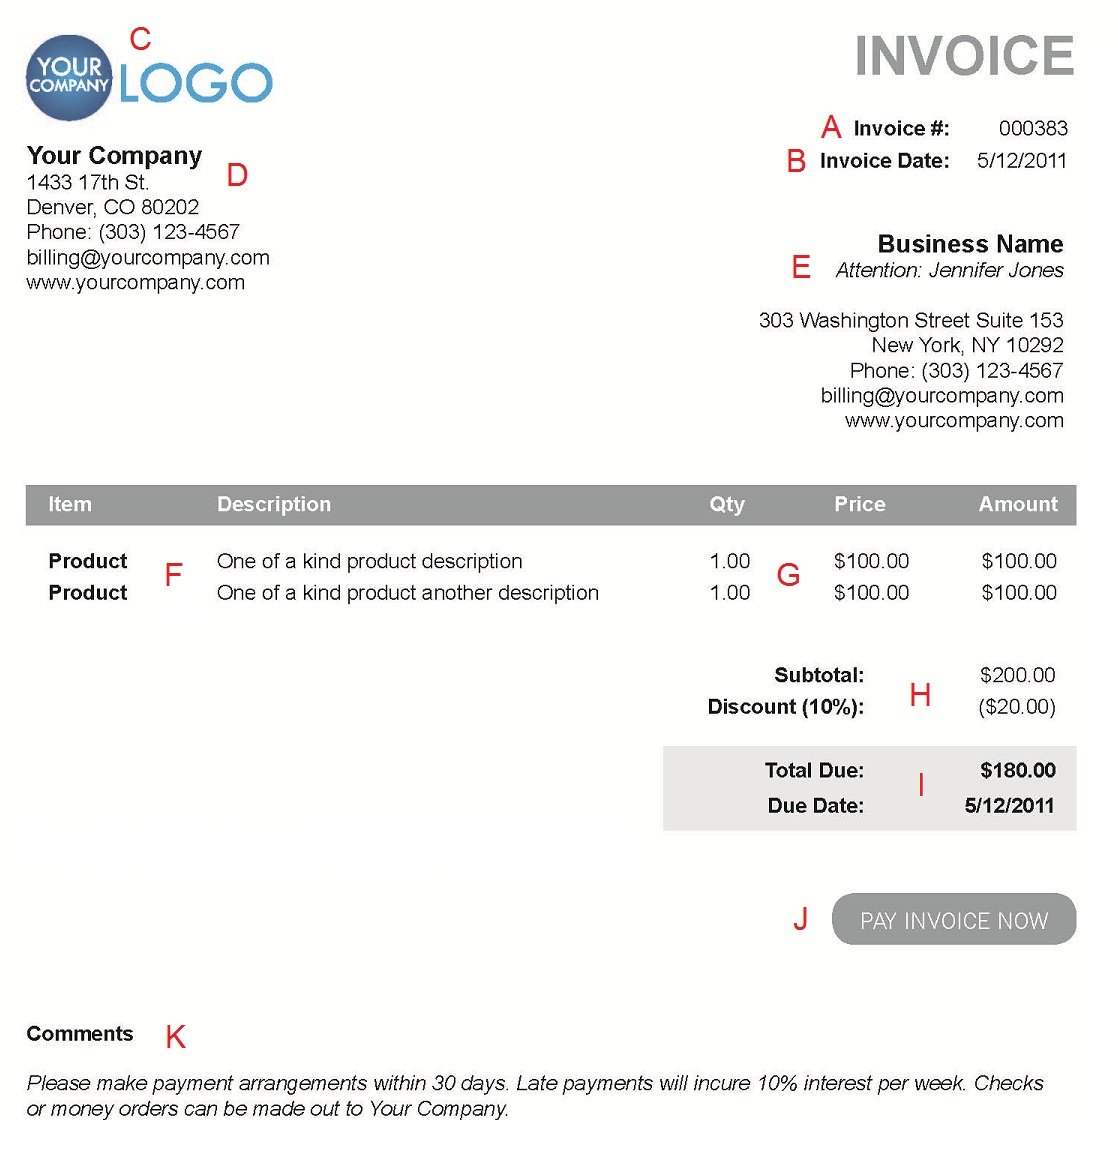 Ultrablogus  Surprising The  Different Sections Of An Electronic Payment Invoice With Inspiring A  With Alluring Microsoft Free Invoice Template Also What Is Invoice Price On A New Car In Addition Sample Business Invoice And Microsoft Word Template Invoice As Well As Crm With Invoicing Additionally Print An Invoice From Paysimplecom With Ultrablogus  Inspiring The  Different Sections Of An Electronic Payment Invoice With Alluring A  And Surprising Microsoft Free Invoice Template Also What Is Invoice Price On A New Car In Addition Sample Business Invoice From Paysimplecom